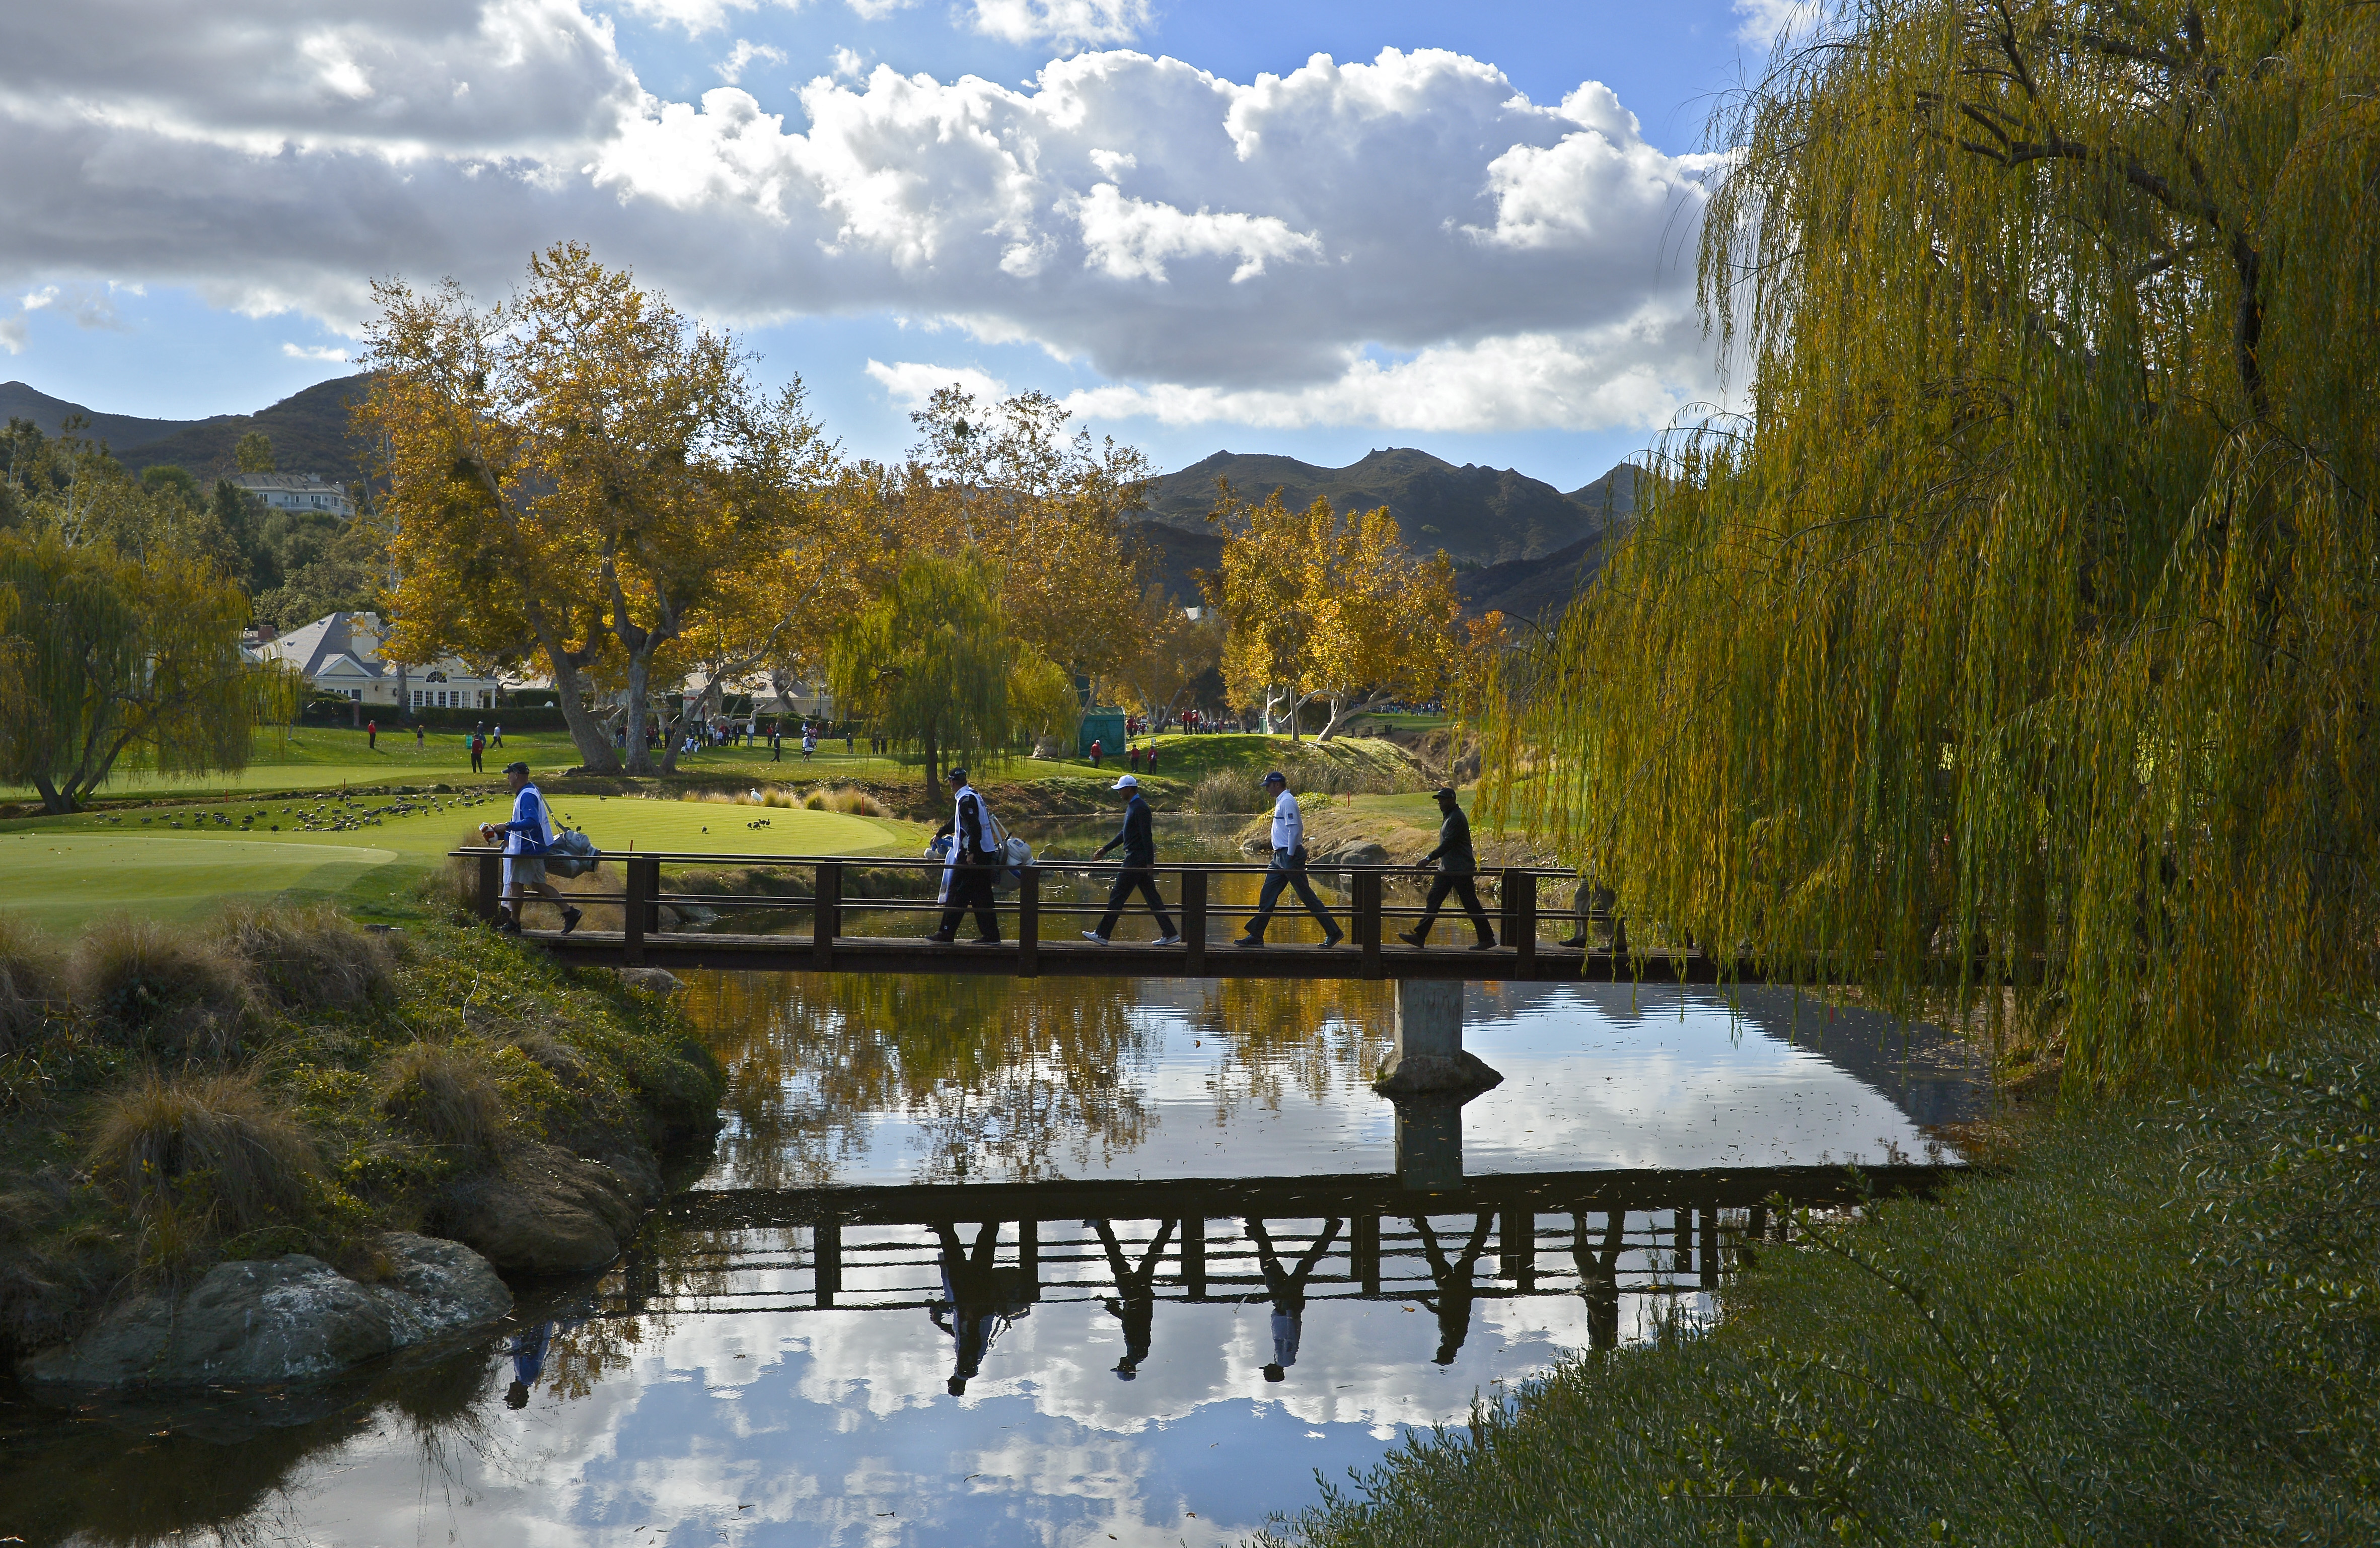 The group of Tiger Woods and Matt Kuchar walk across a bridge to get to the green on the second hole during the first round of the Northwestern Mutual World Challenge golf tournament at Sherwood Country Club, Thursday, Dec. 5, 2013, in Thousand Oaks, Cali